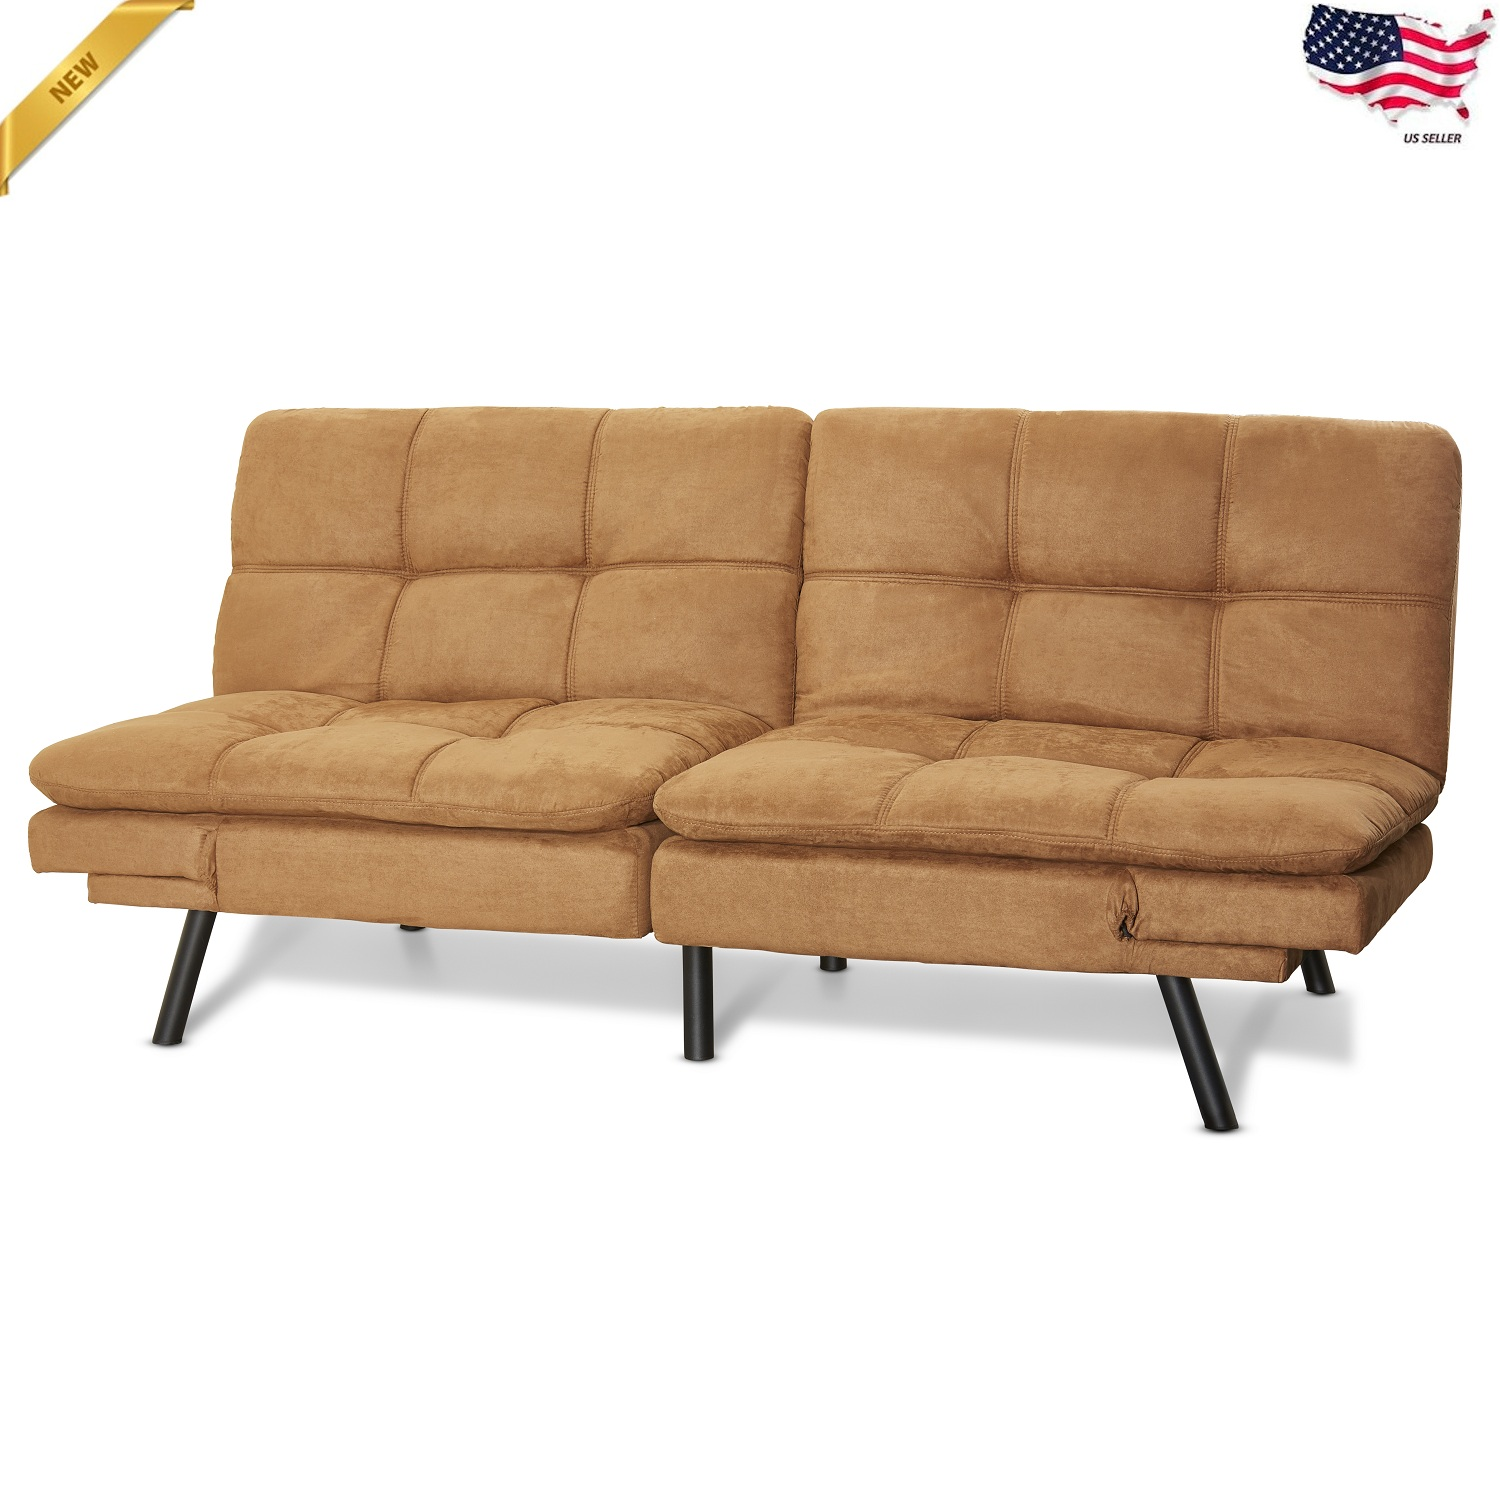 Convertible Futon Sleeper Sofa Couch Loveseat Modern Living Room Suede Furniture